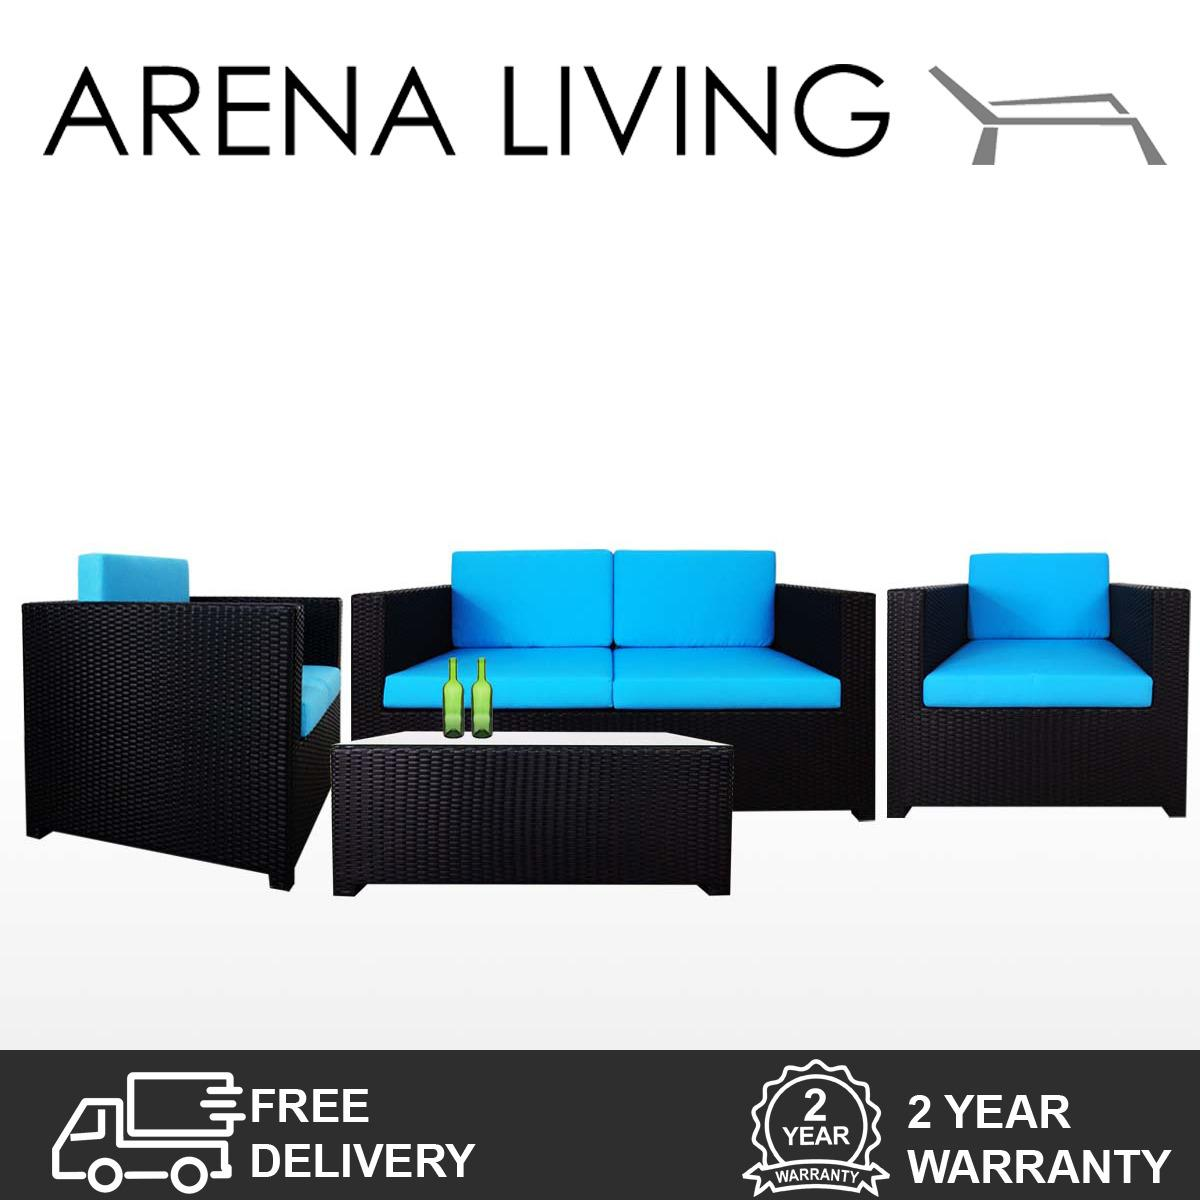 Discount Fiesta Sofa Set Ii Blue Cushions Outdoor Furniture By Arena Living™ Arena Living